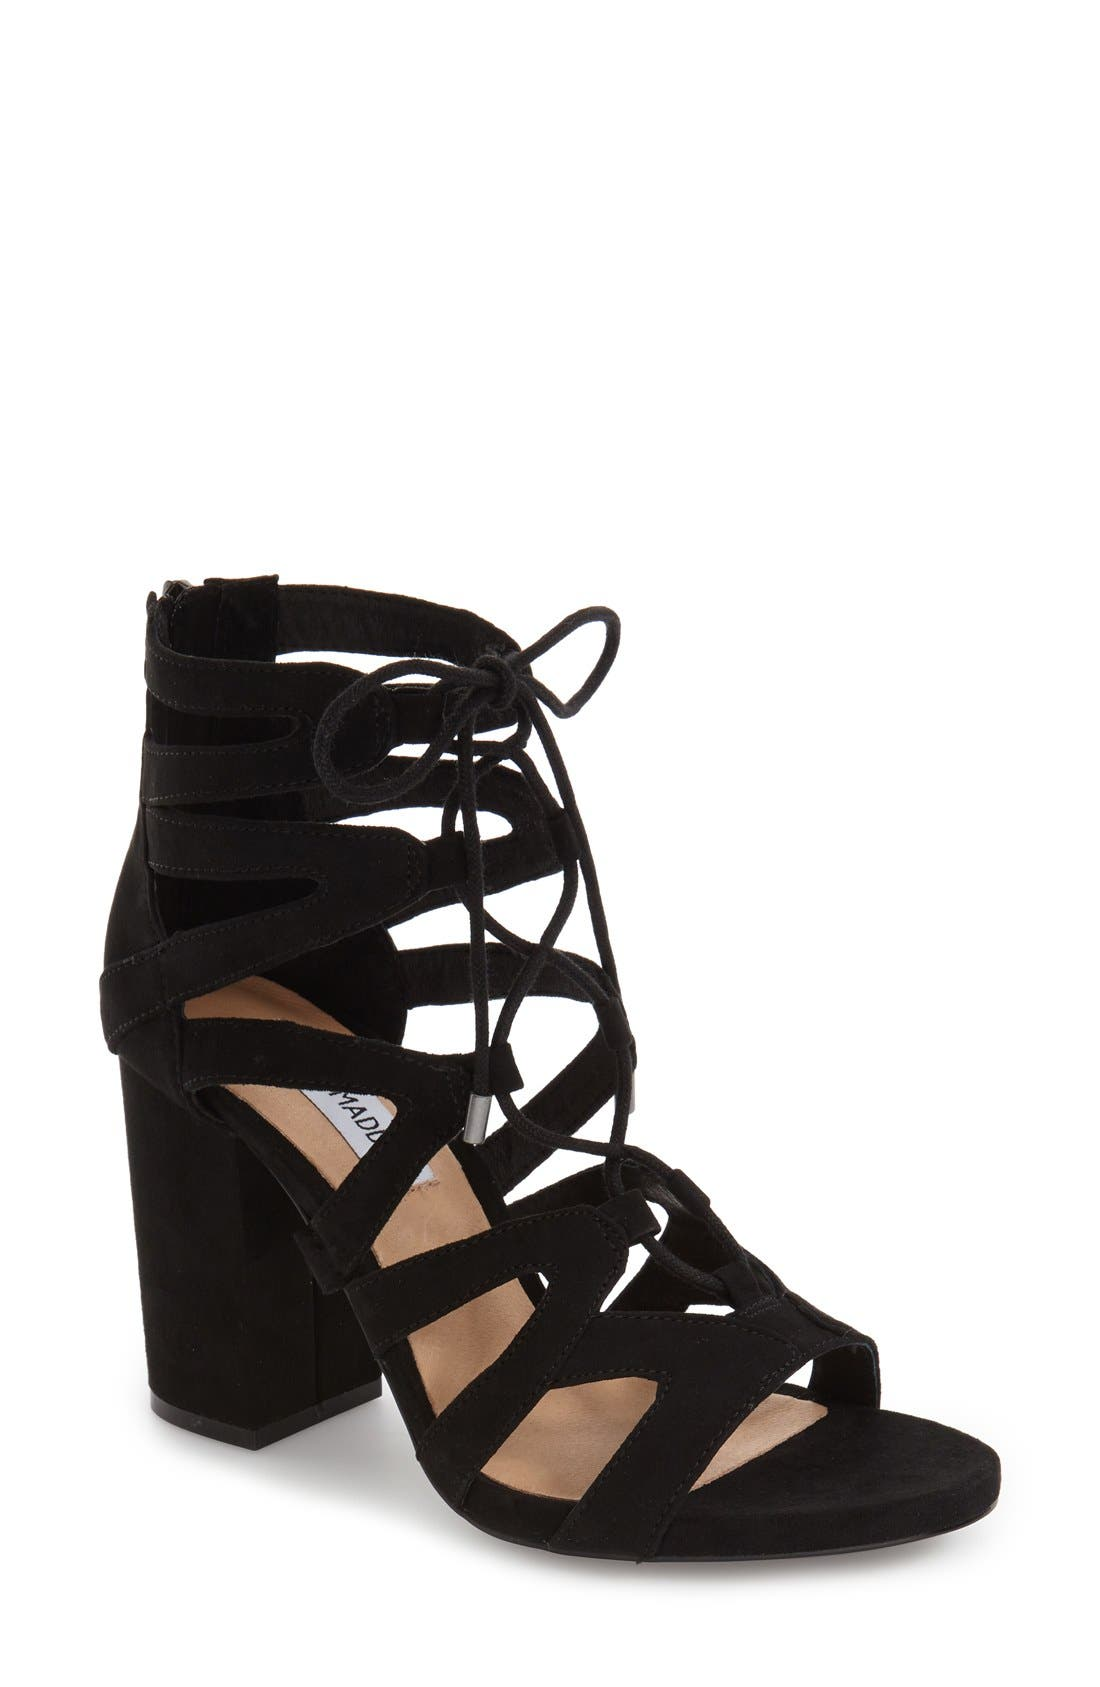 STEVE MADDEN 'Gal' Strappy Lace-Up Sandal